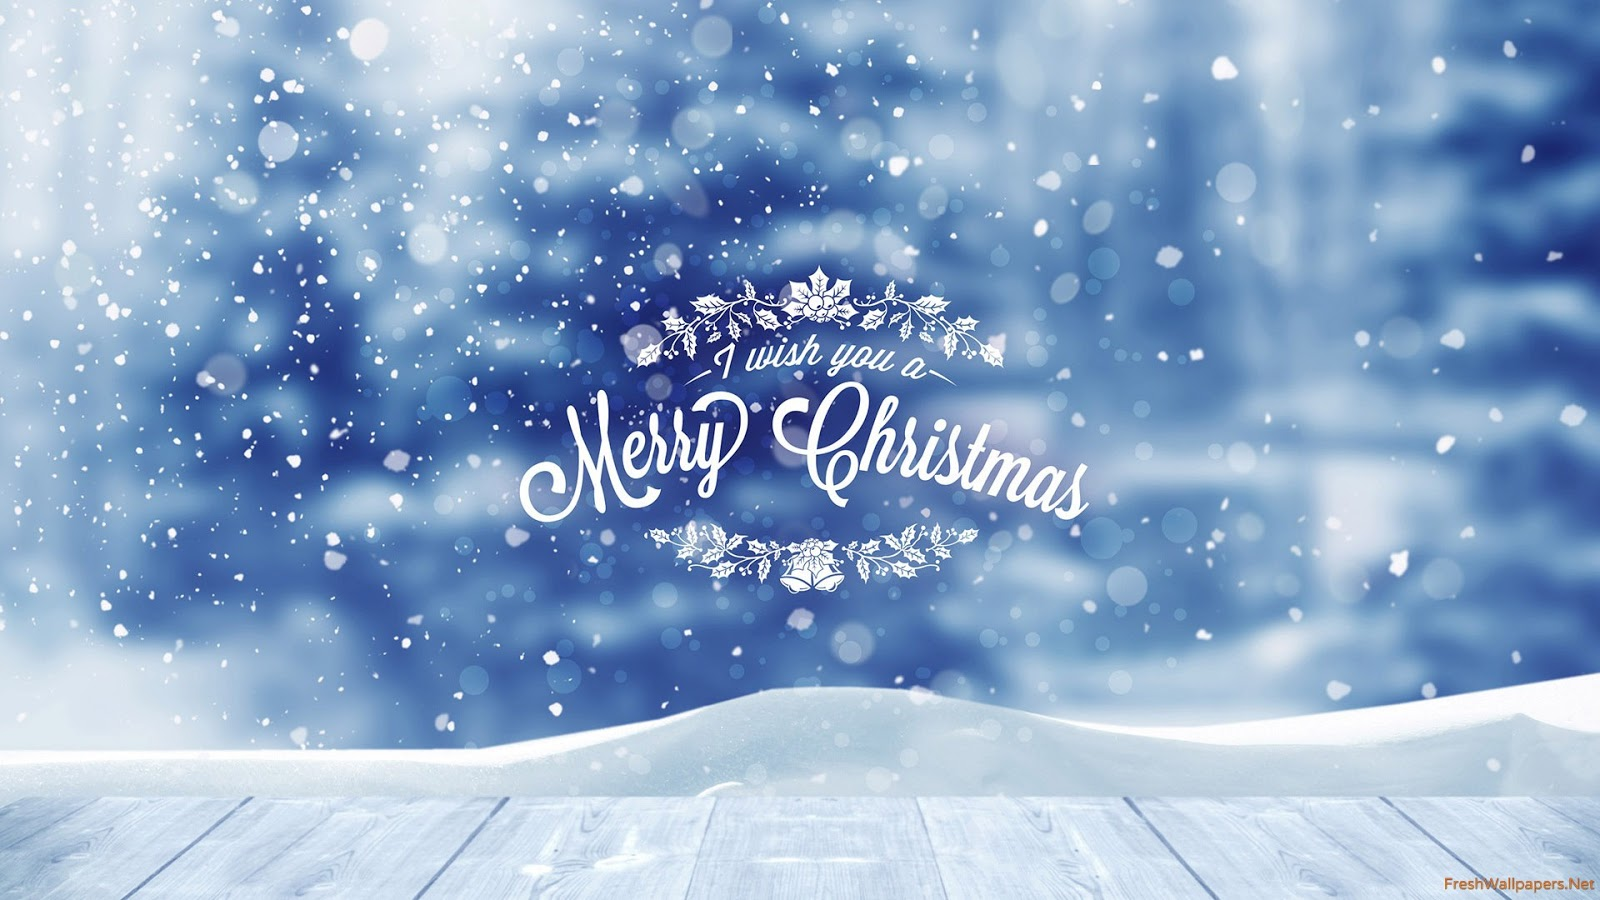 Merry Christmas Greetings 2017 Wishes With Greetings Text Messages